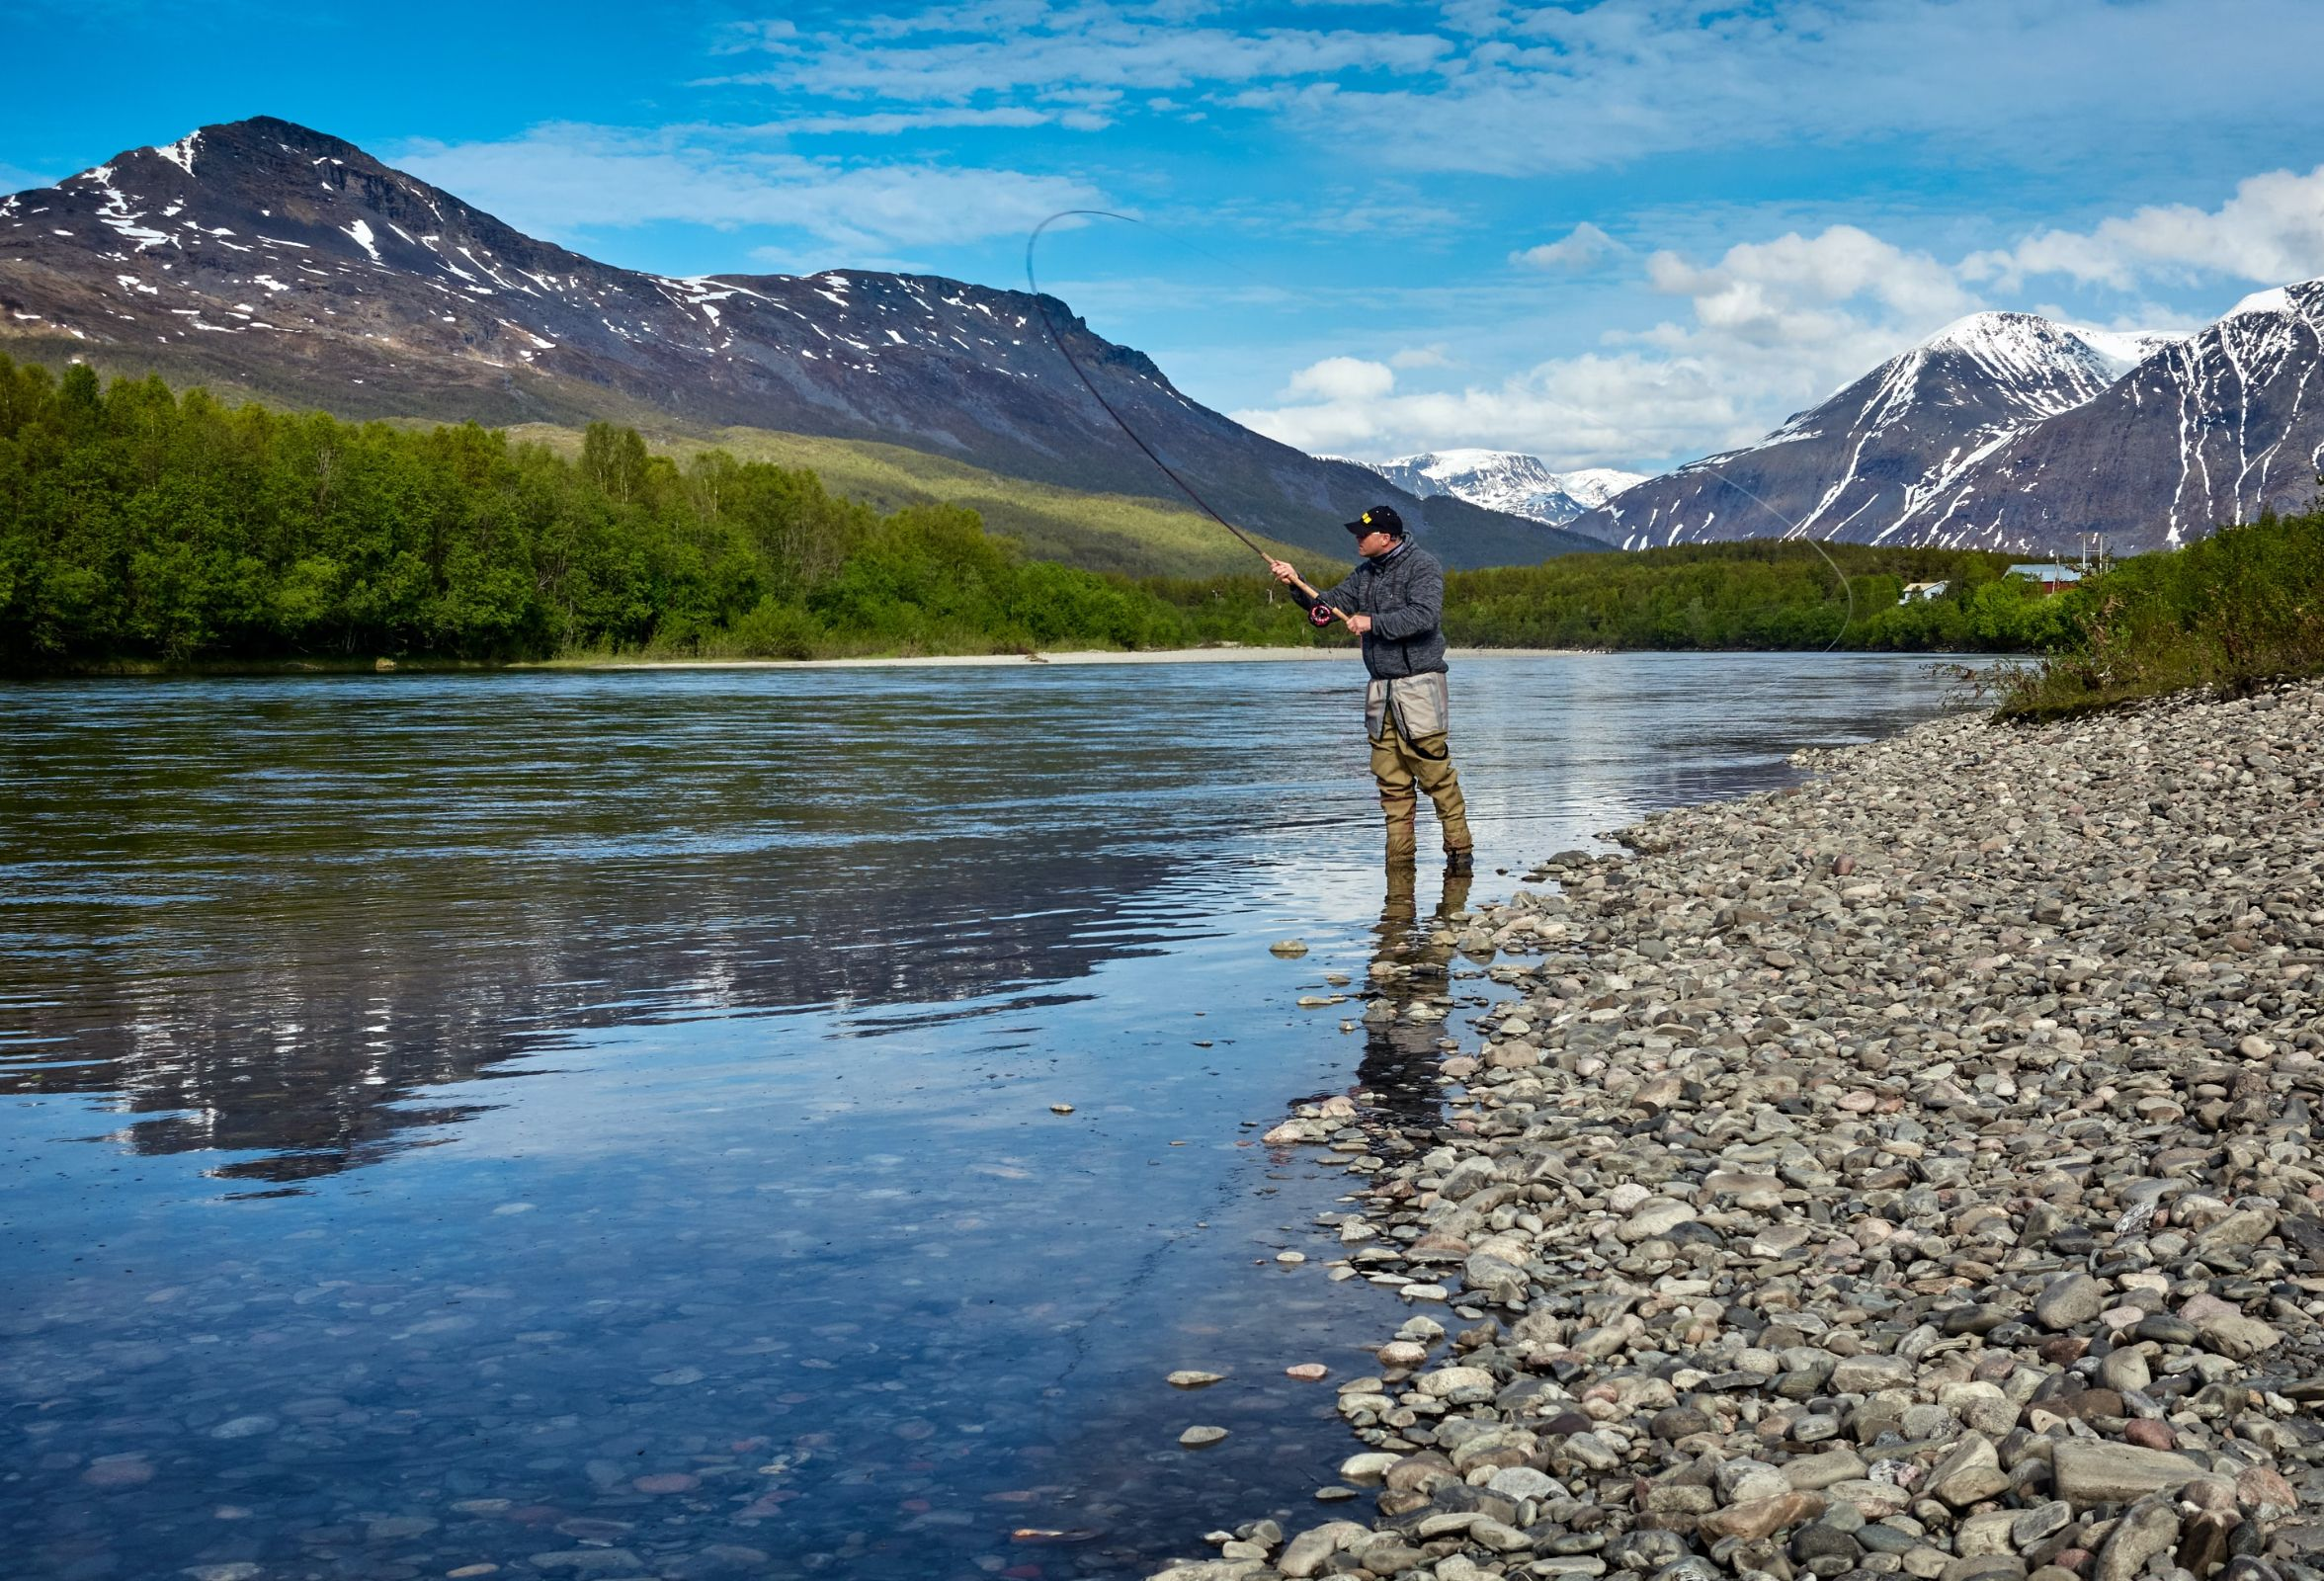 Man fishing on the shallow part of the river with the view of the mountains